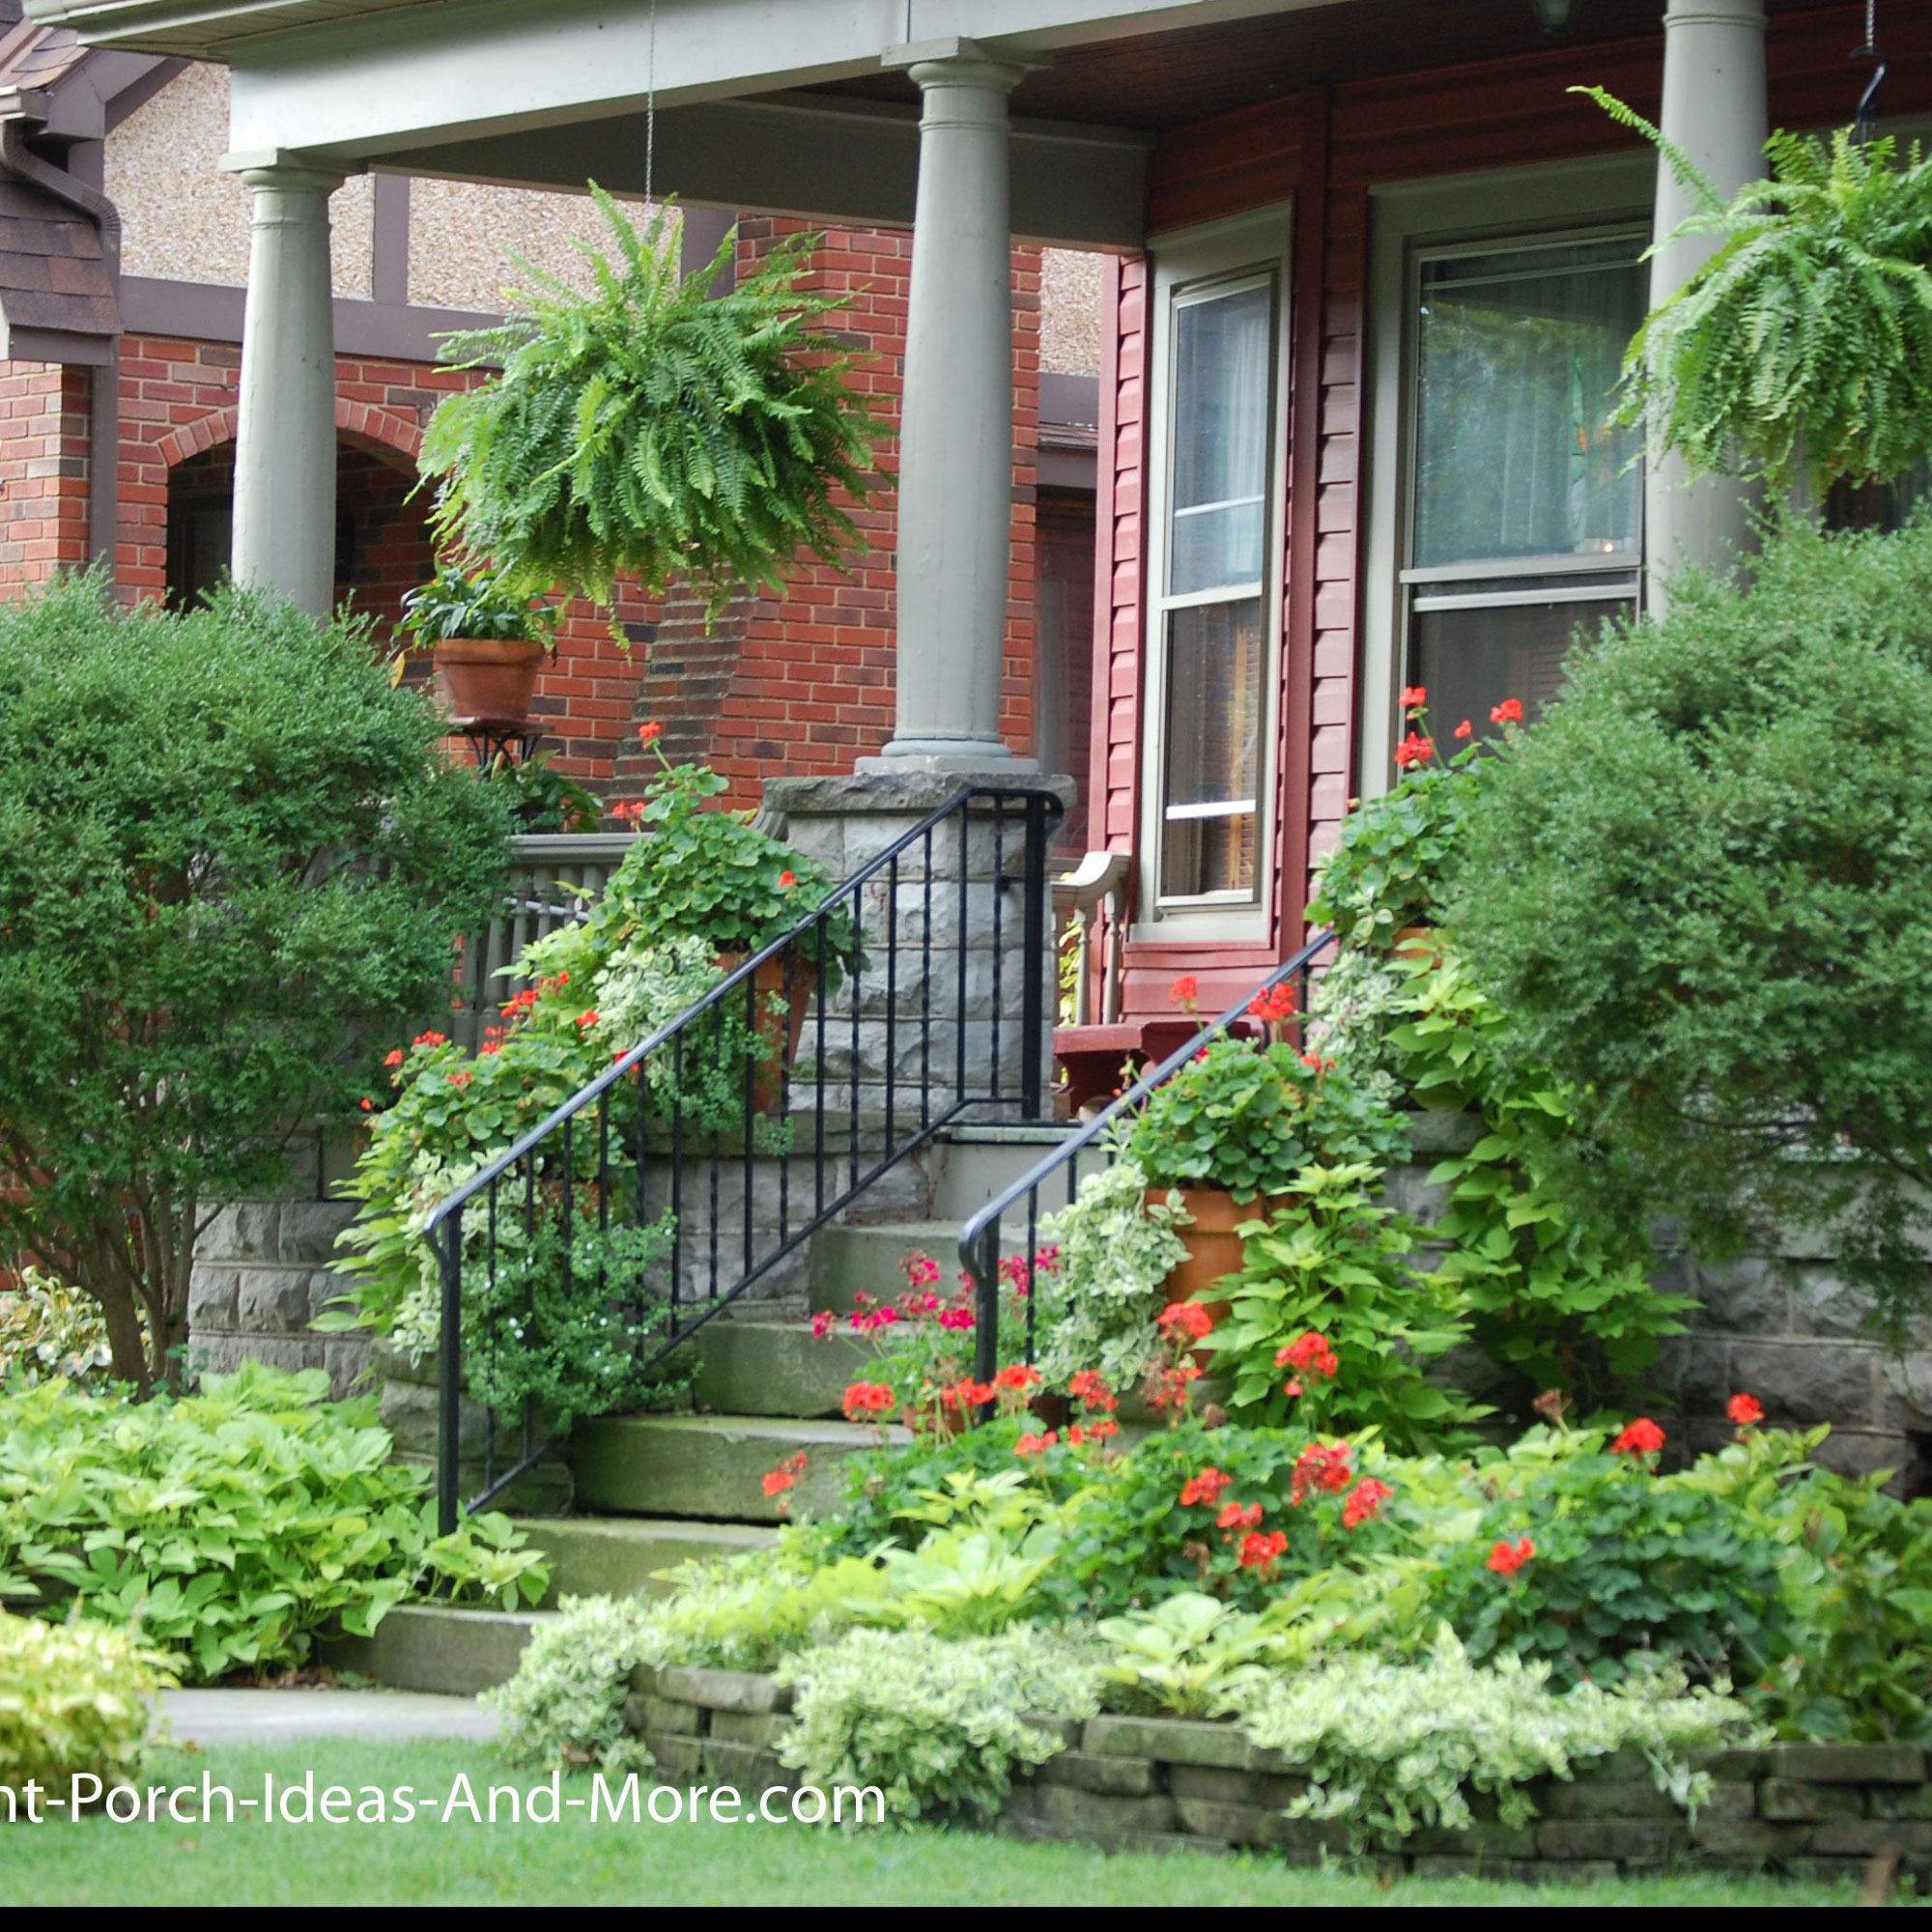 Porch landscaping ideas for your front yard and more for Pictures of landscaping ideas